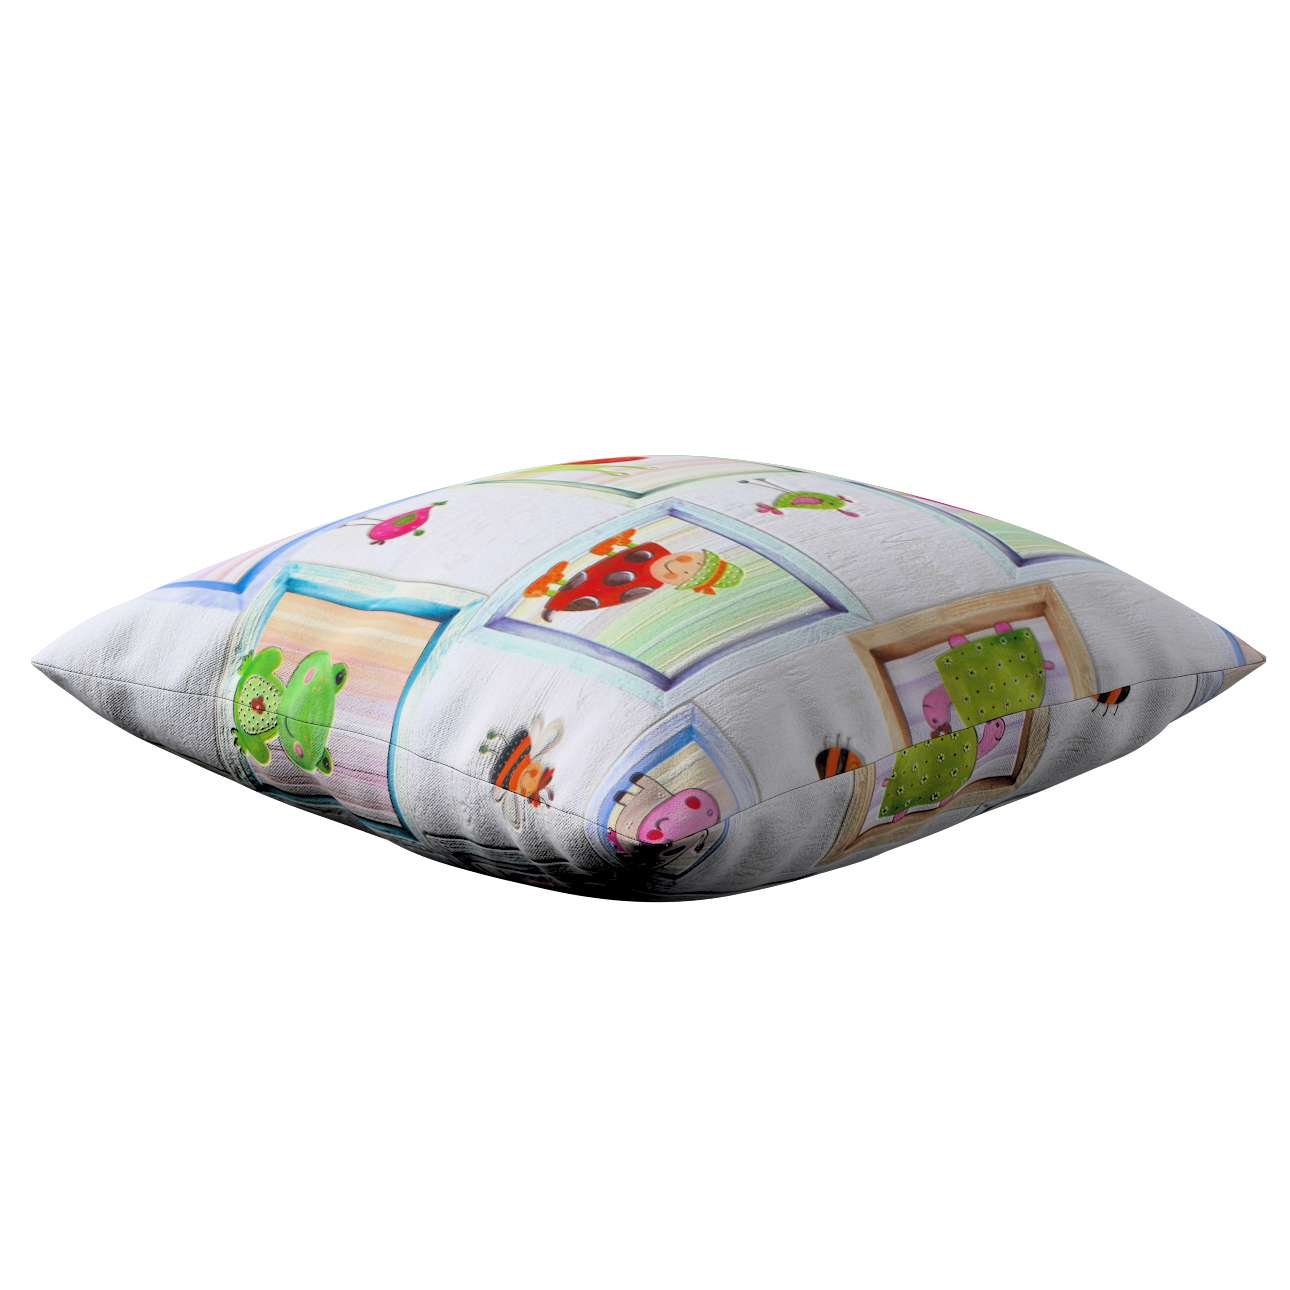 Kinga cushion cover 43 x 43 cm (17 x 17 inch) in collection Apanona, fabric: 151-04